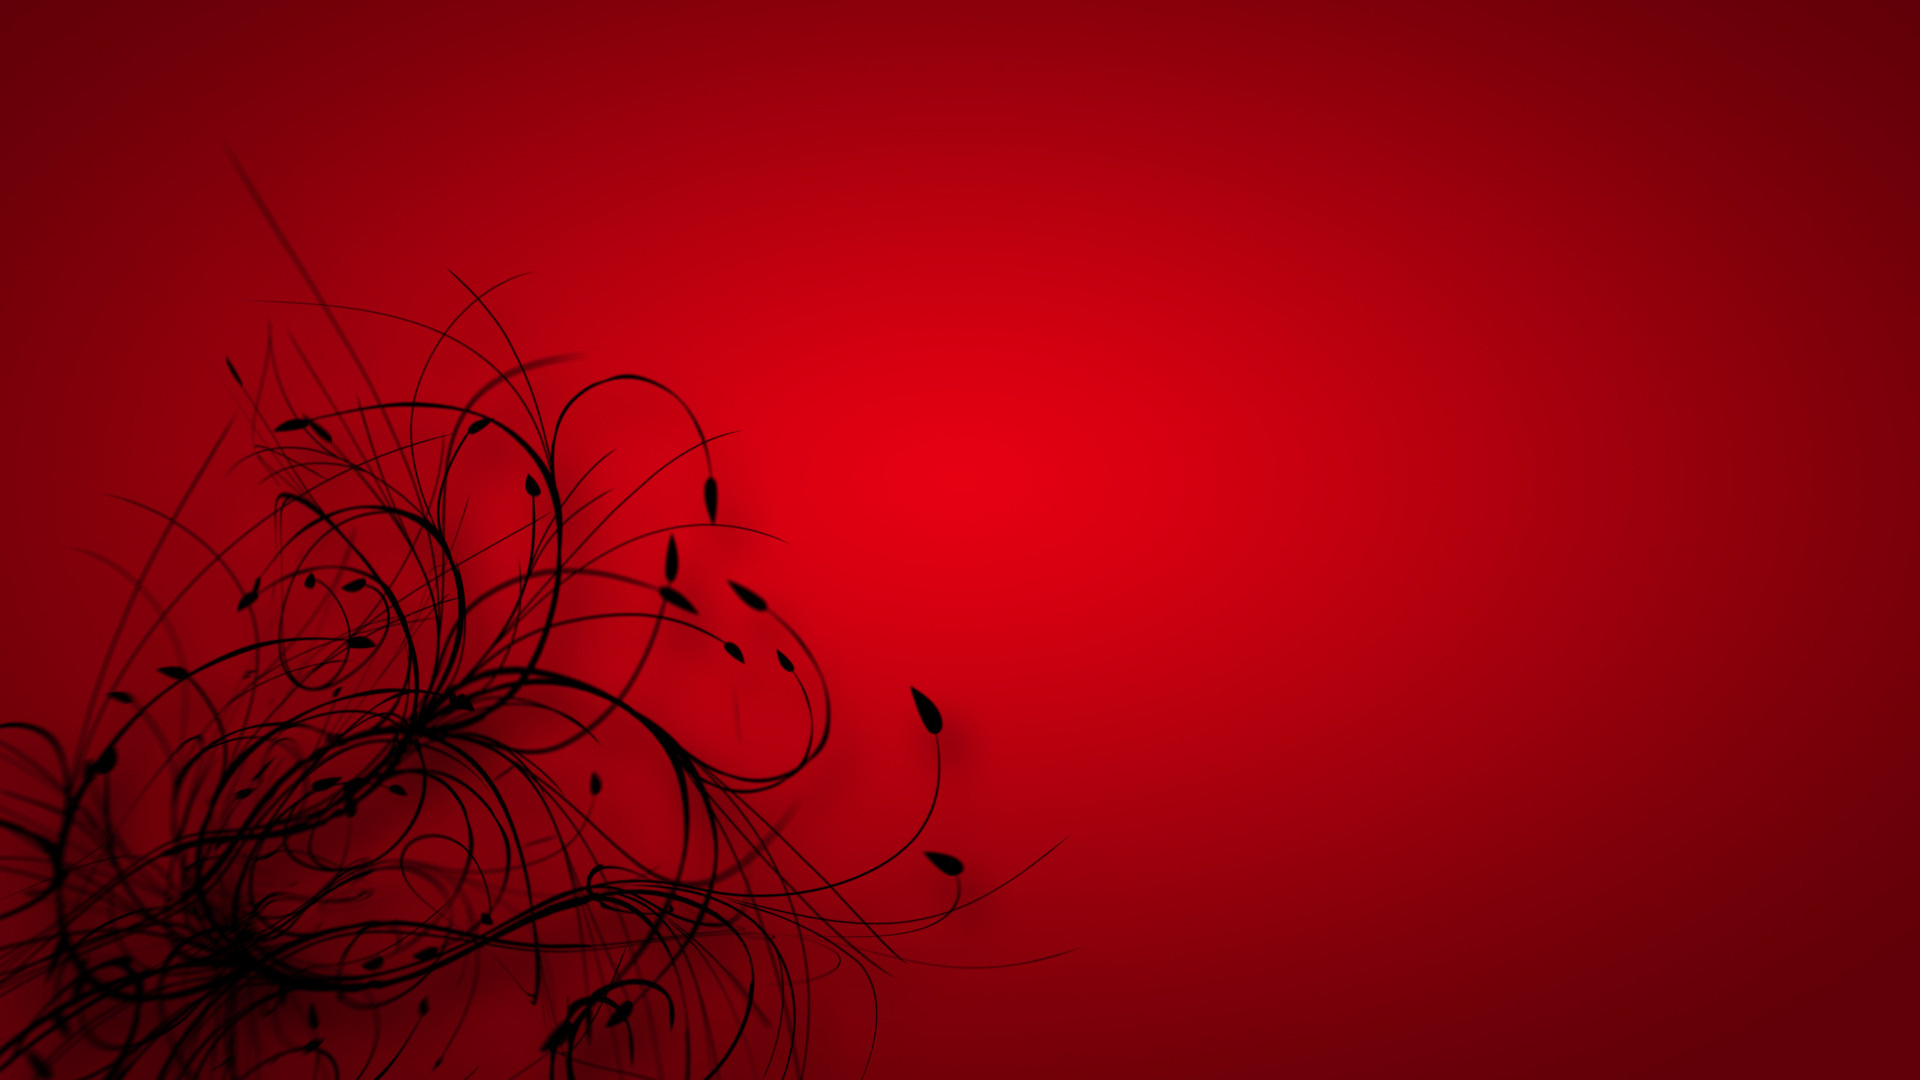 Red Hd Wallpapers 1080p 73 Images